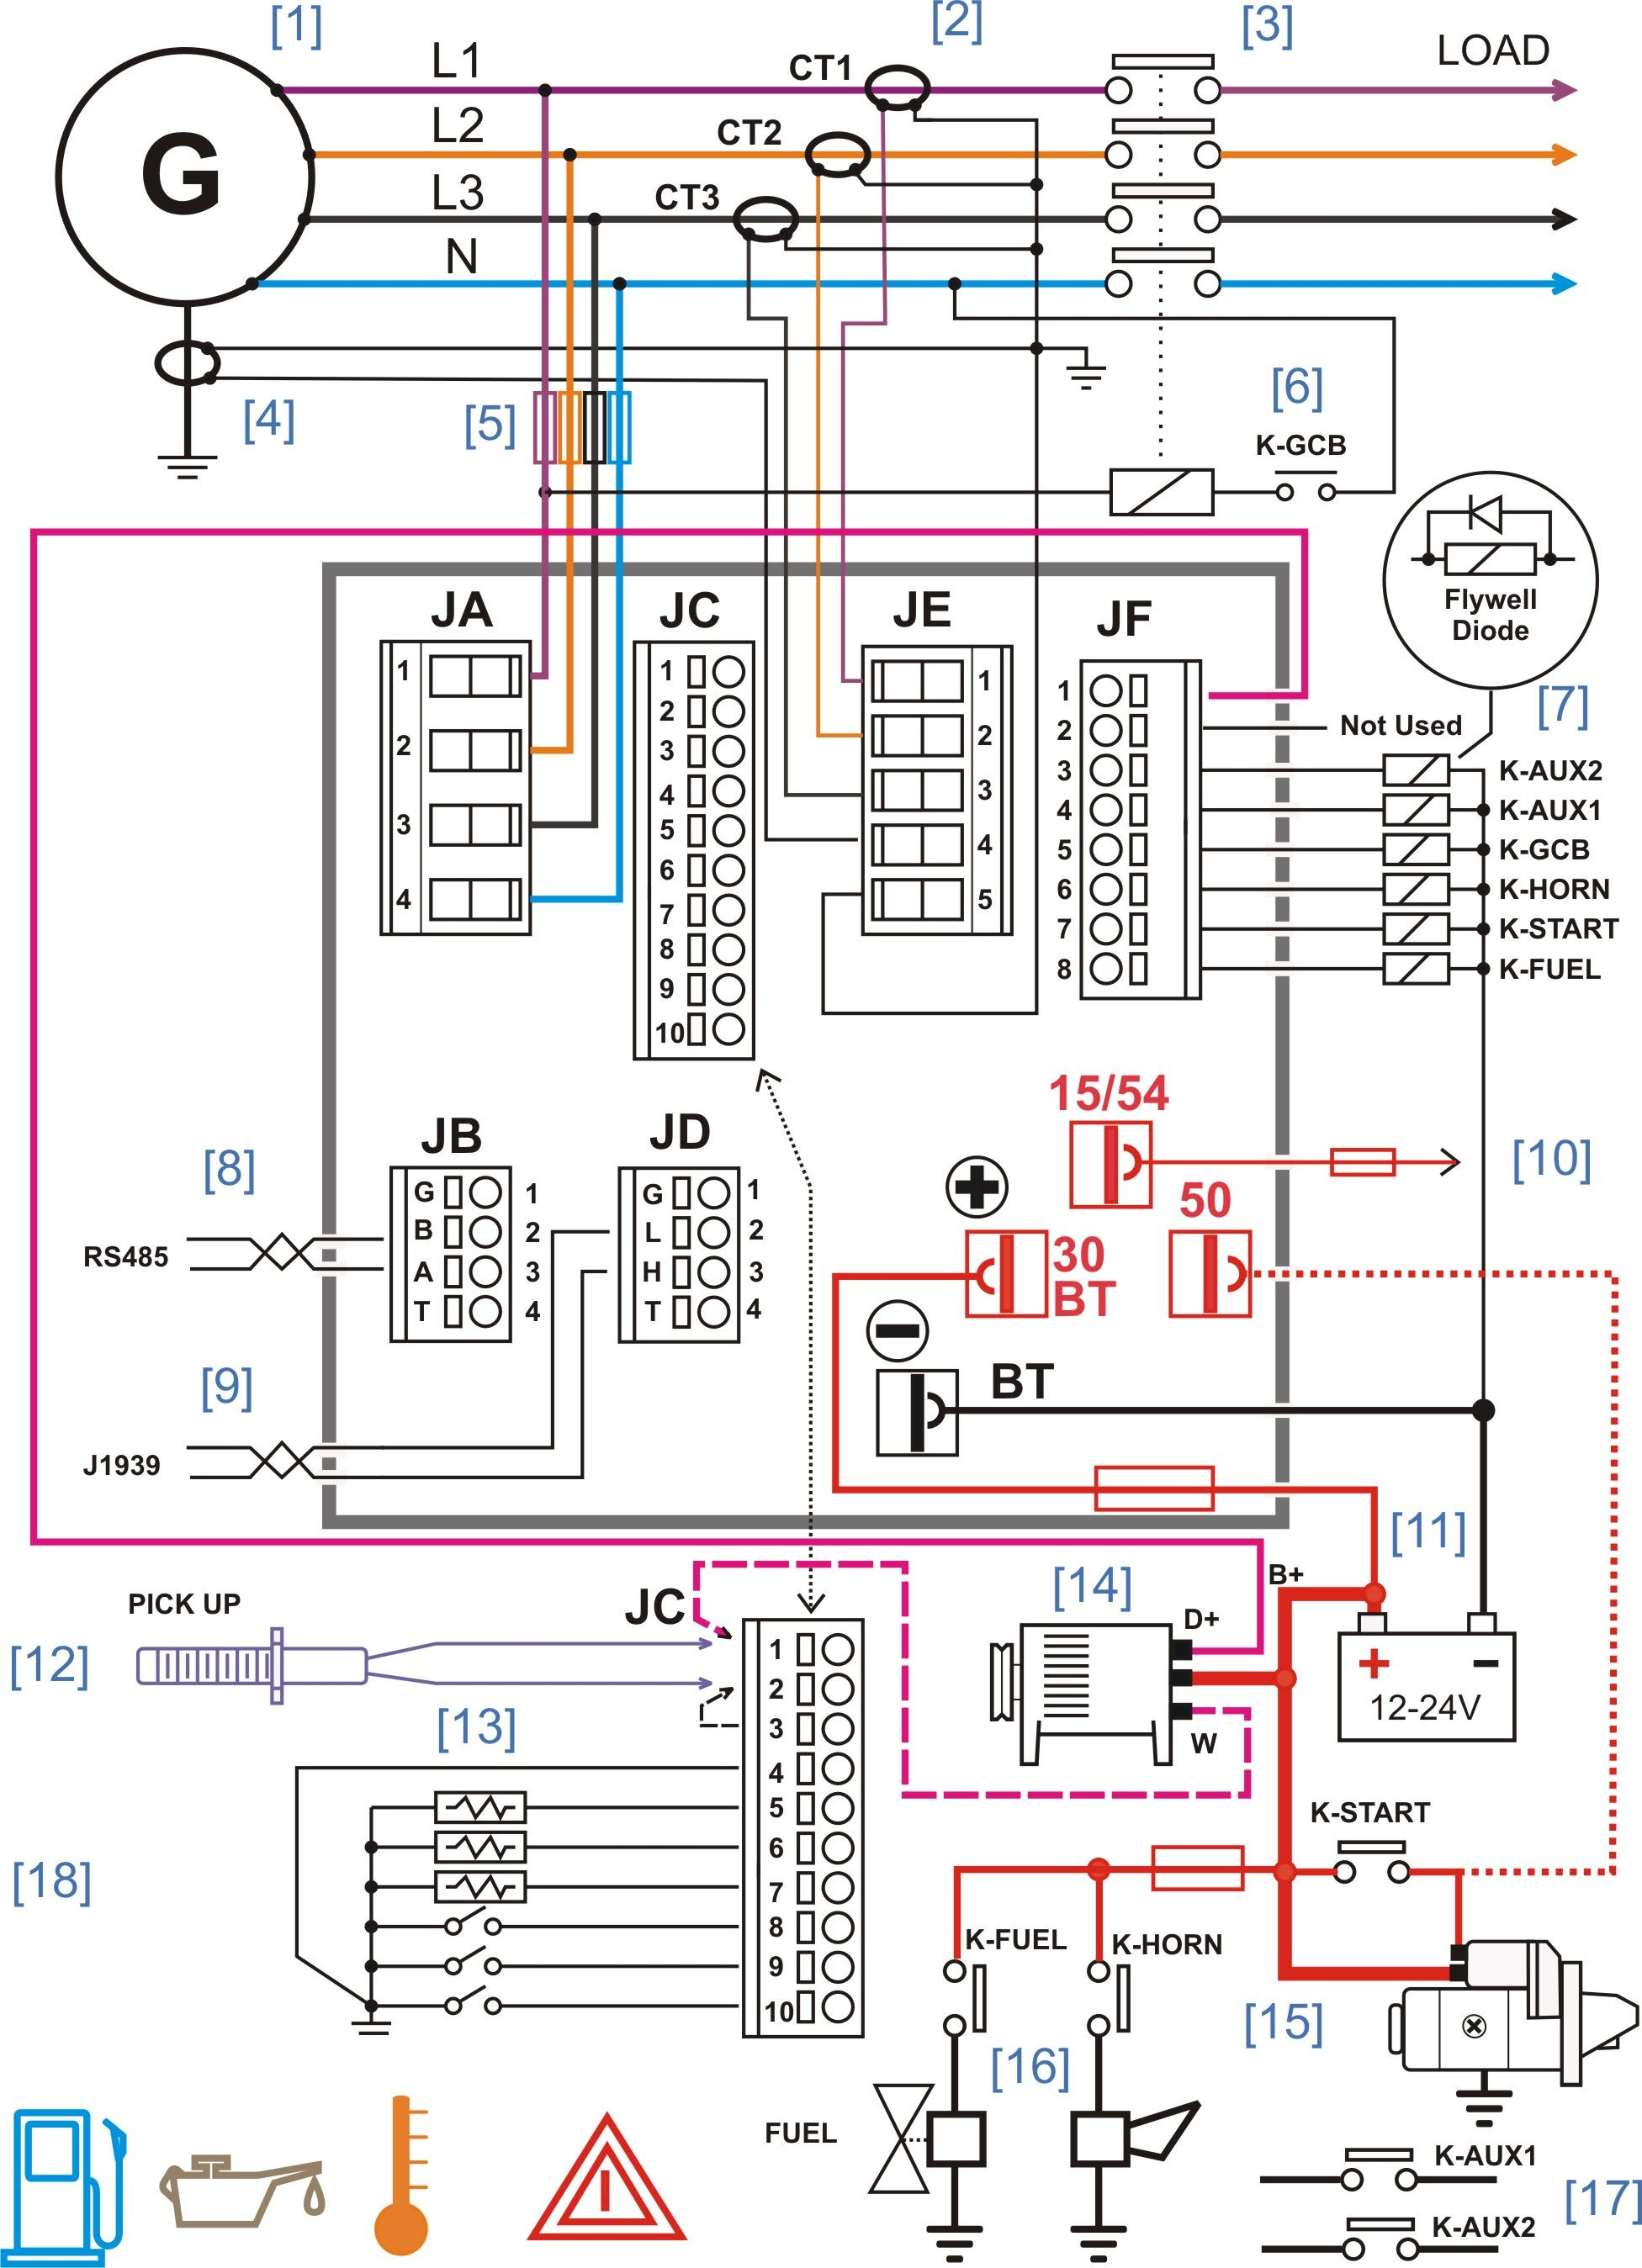 diesel generator control panel wiring diagram diesel generators rh pinterest com electrical panel wiring symbols test Electrical Circuit Breaker Panel Diagram